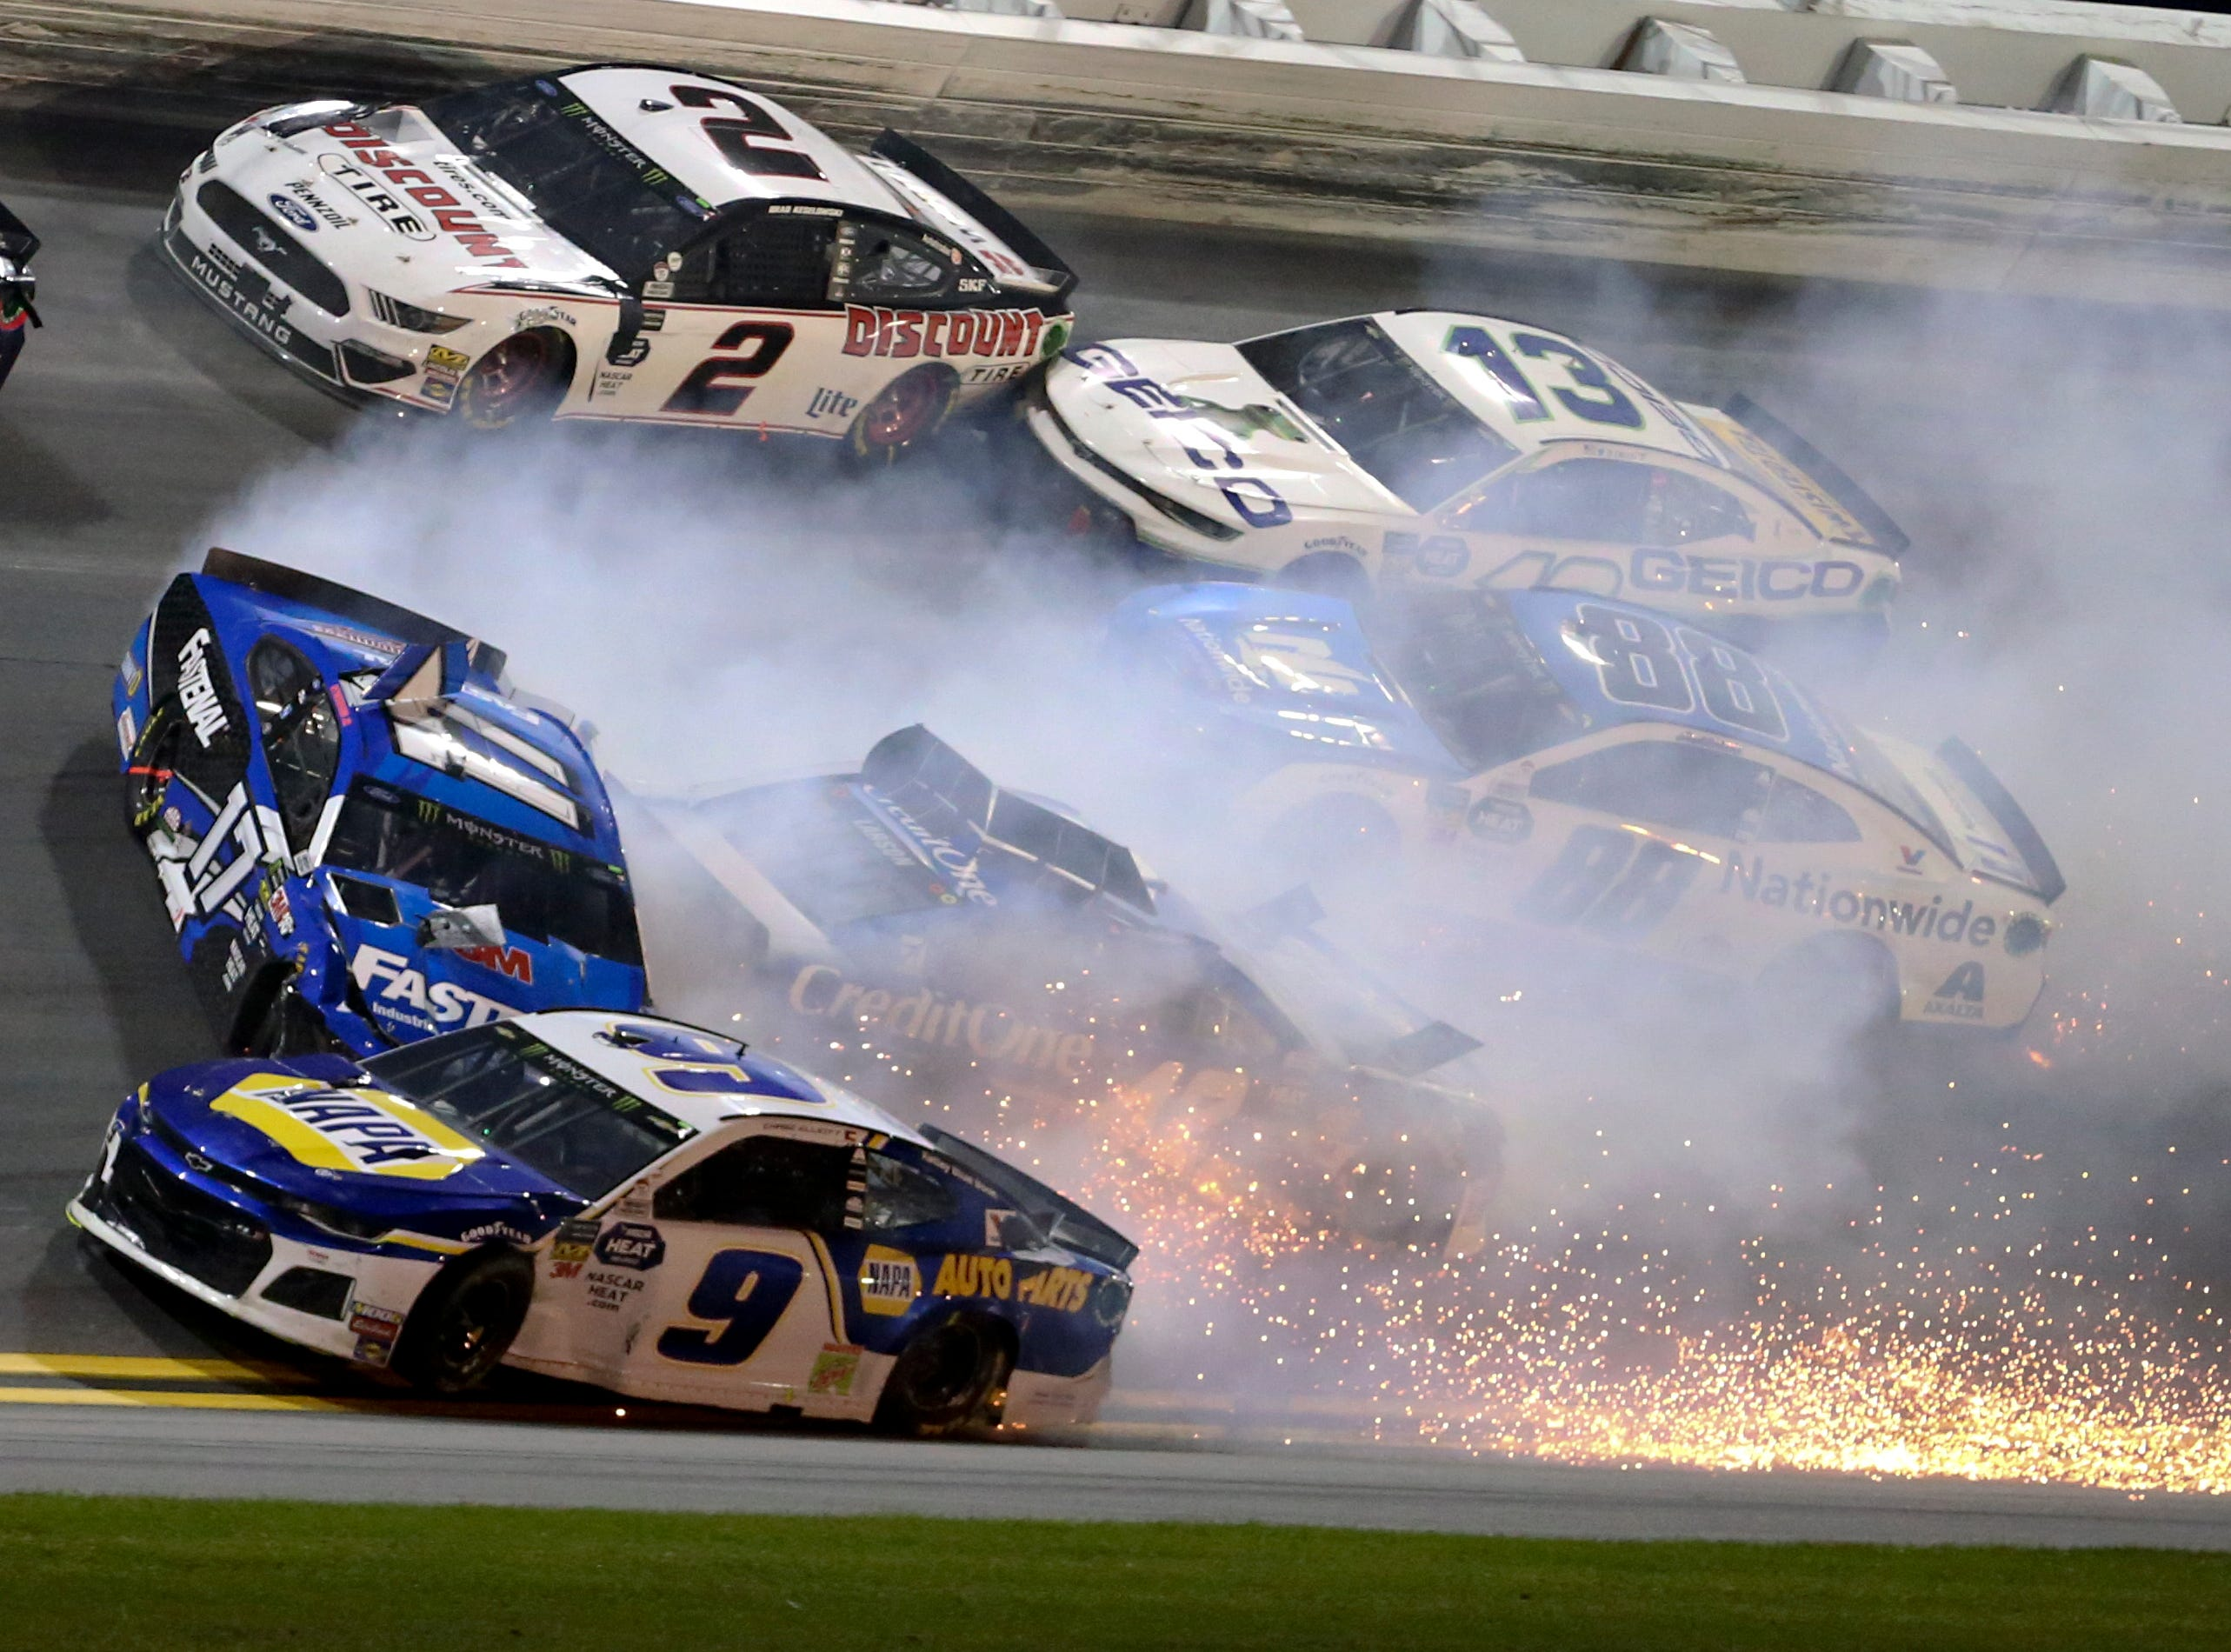 Chase Elliott (9), Ricky Stenhouse Jr. (17), Brad Keselowski (2), Kyle Larson (42), Ty Dillon (13) and Alex Bowman (88) wreck in Turn 3 during the NASCAR Daytona 500 auto race at Daytona International Speedway.